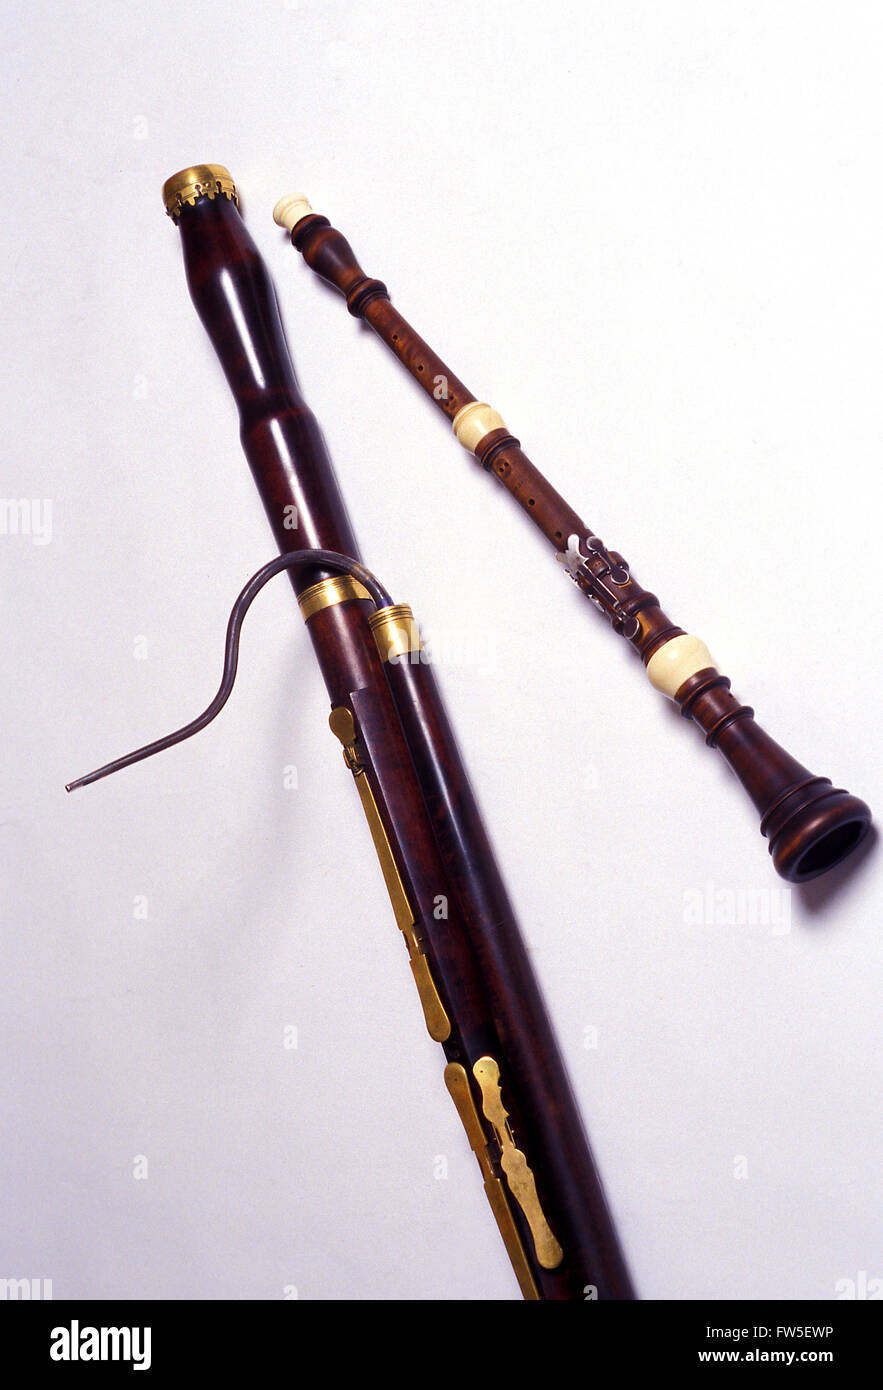 INST - WOODWIND - OBOE - BAROQUE with baroque Bassoon. #GM23 / 24 - Stock Image